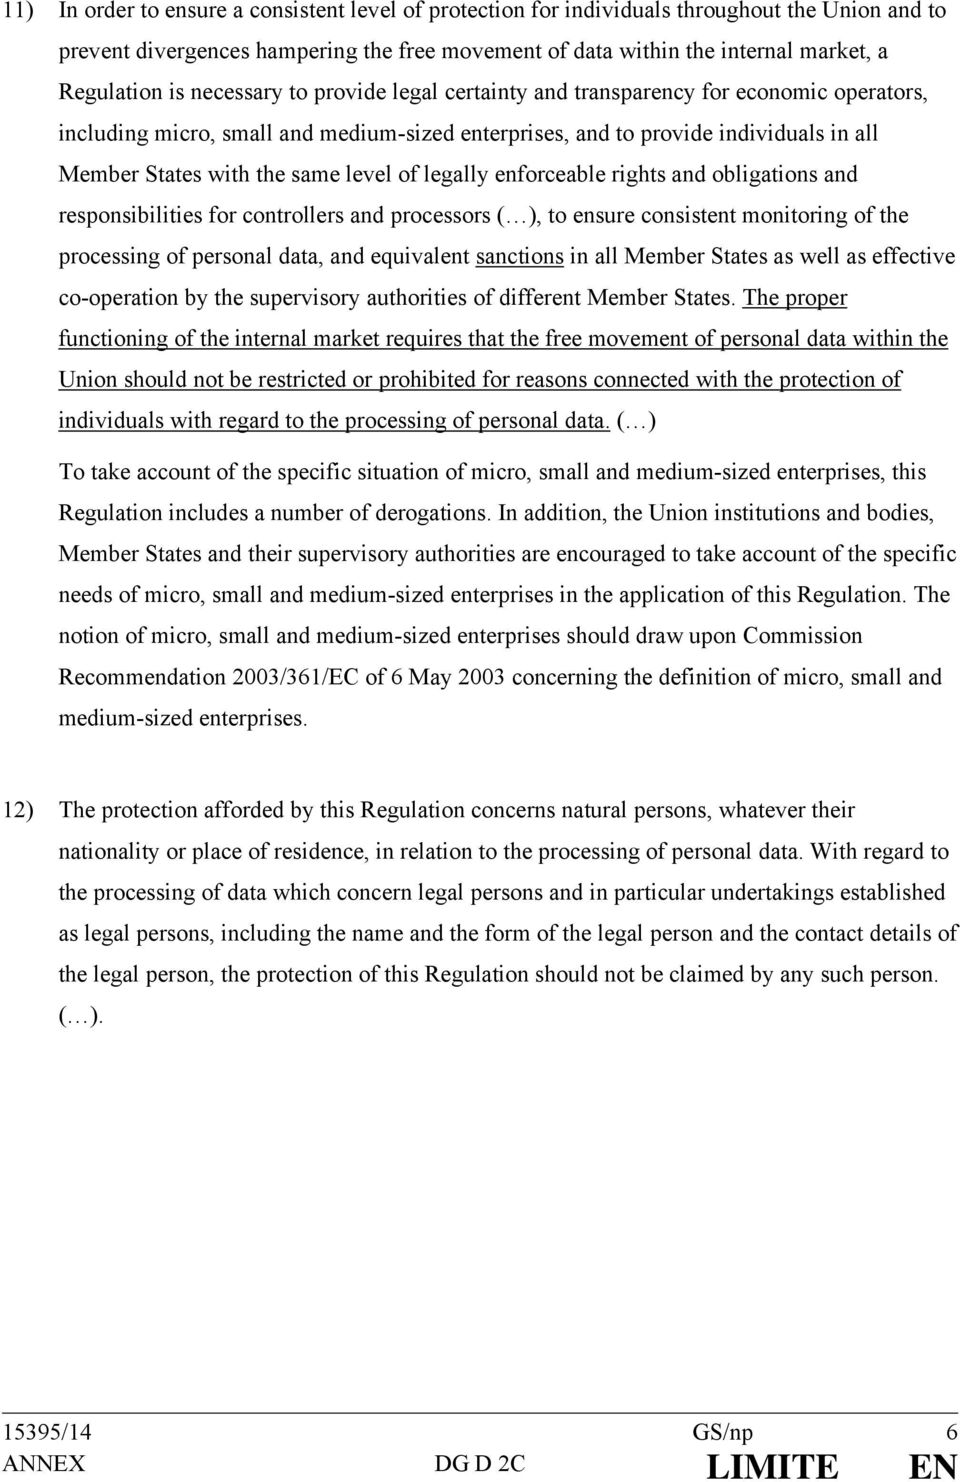 of legally enforceable rights and obligations and responsibilities for controllers and processors ( ), to ensure consistent monitoring of the processing of personal data, and equivalent sanctions in